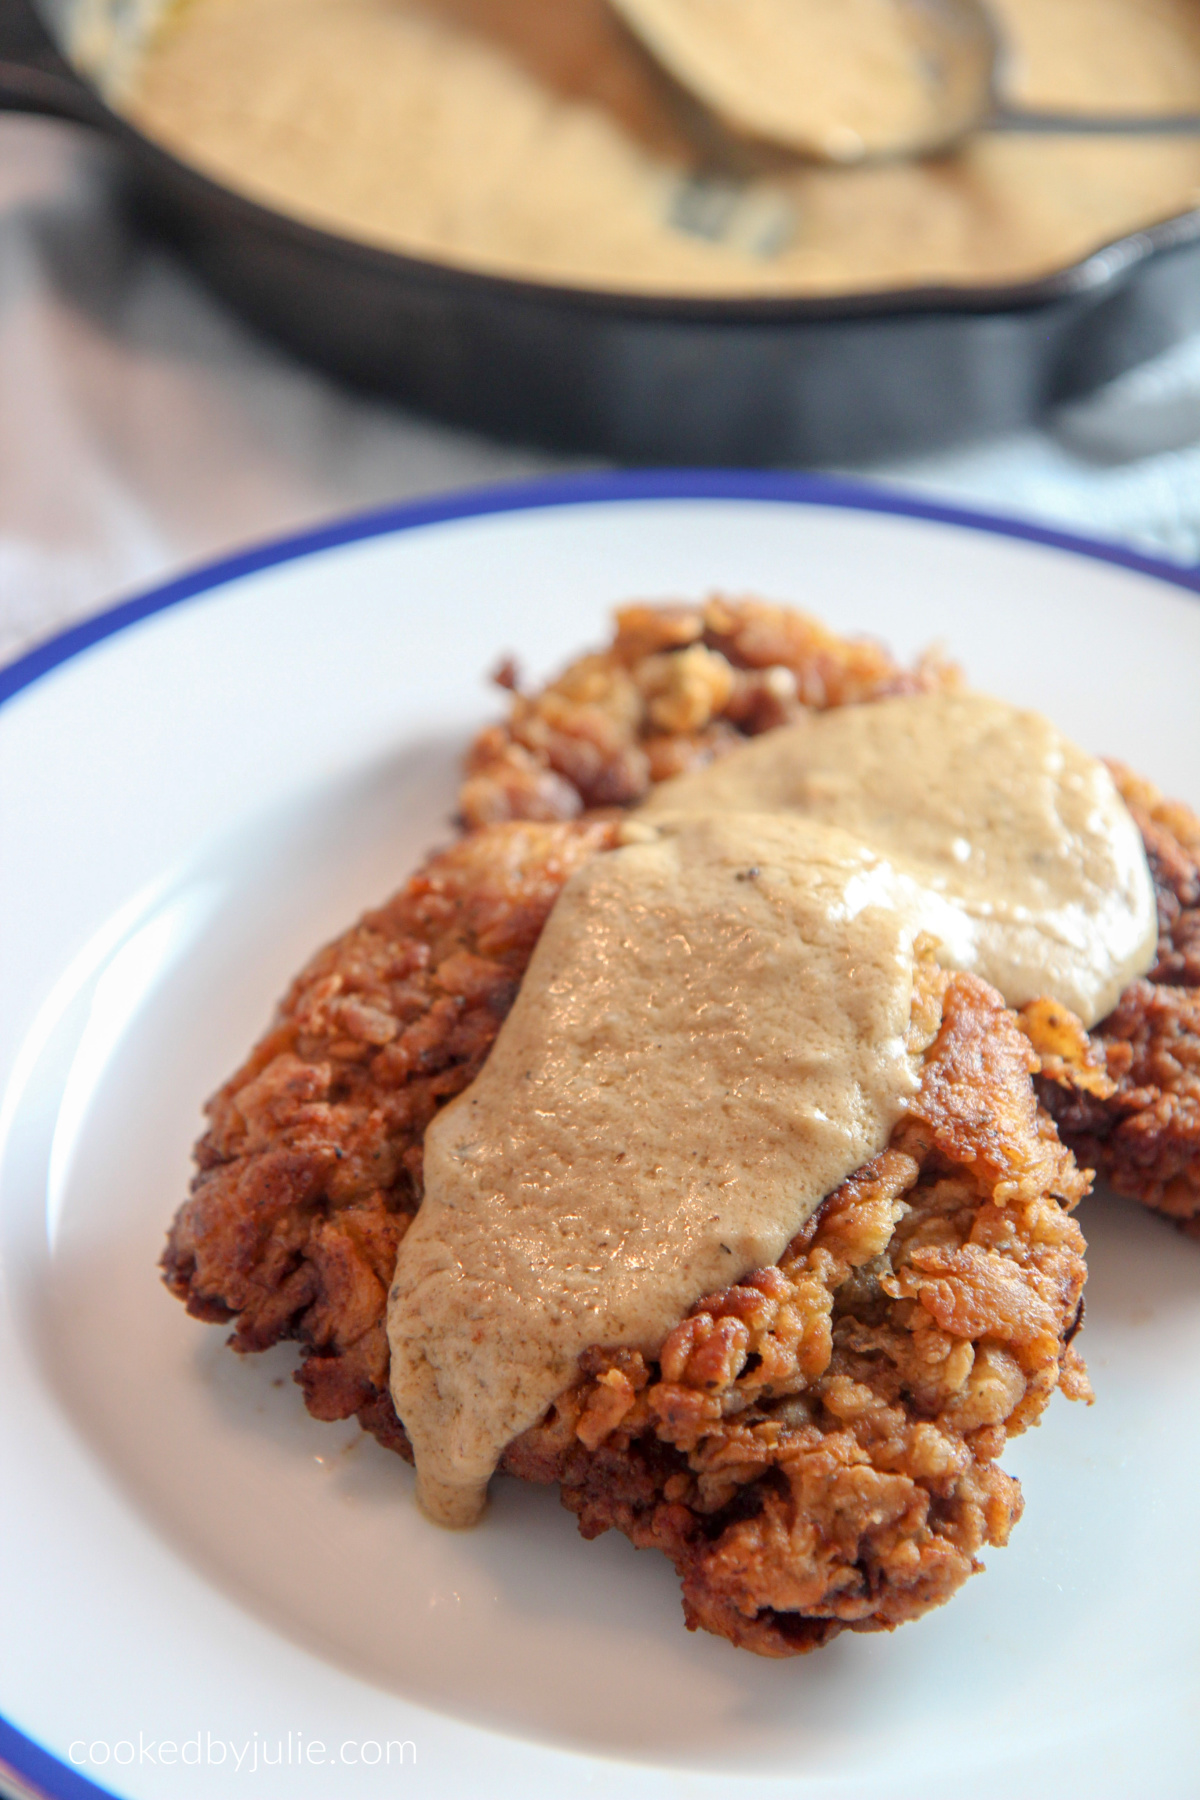 two pieces of chicken fried steak on a white and blue plate with gravy on top. An iron skillet with gravy and a spoon in the background.